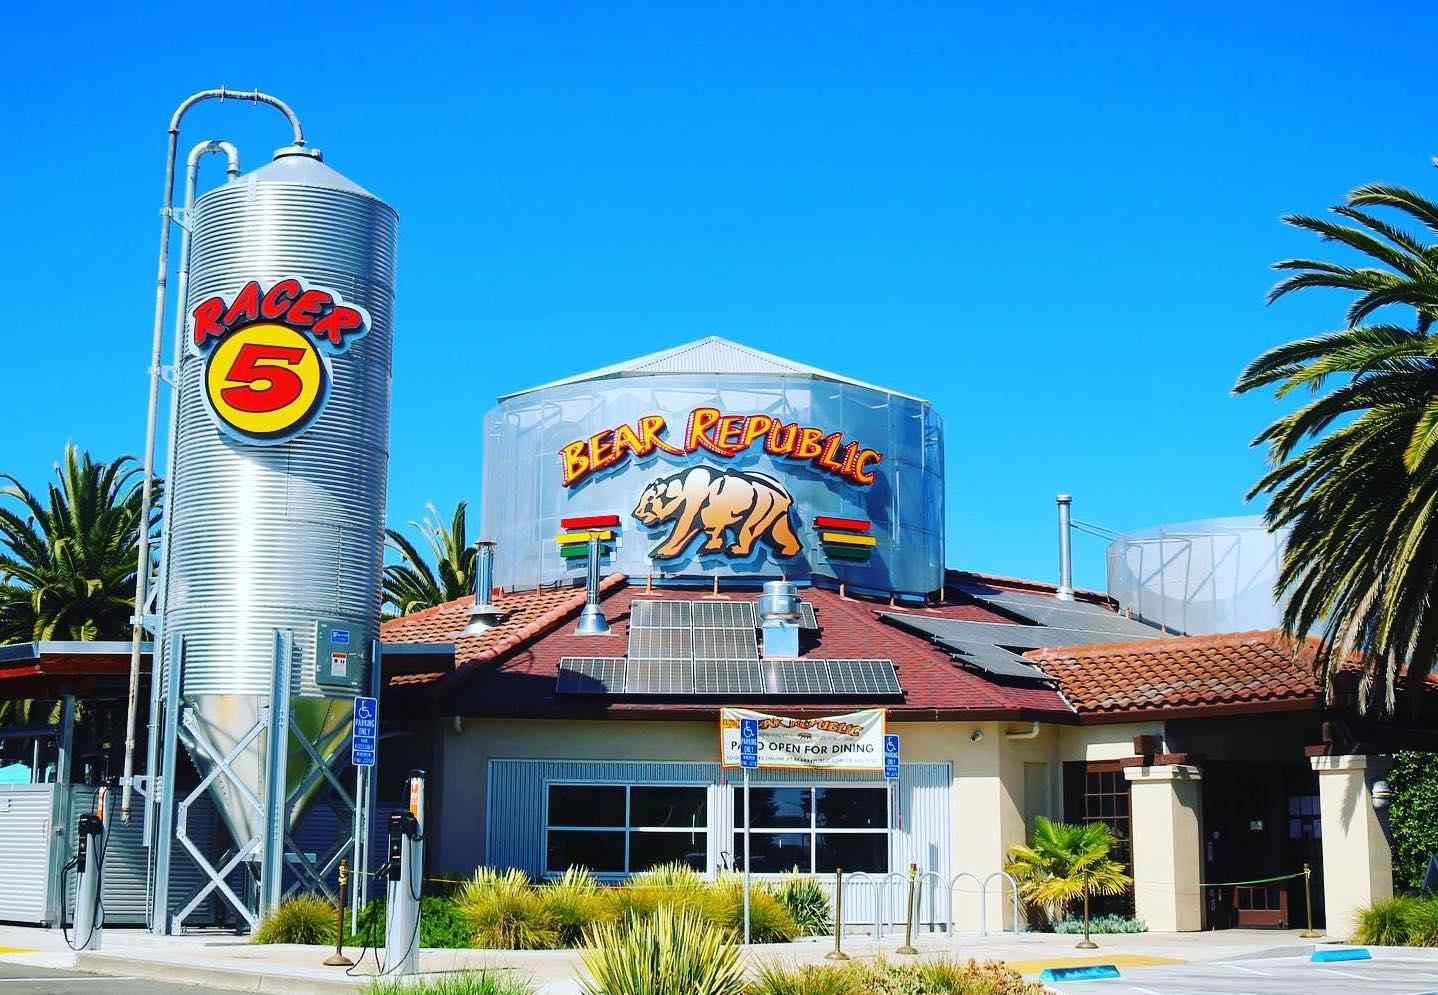 exterior of a one floor brewery. There is a tall metal silo with a sign that reads